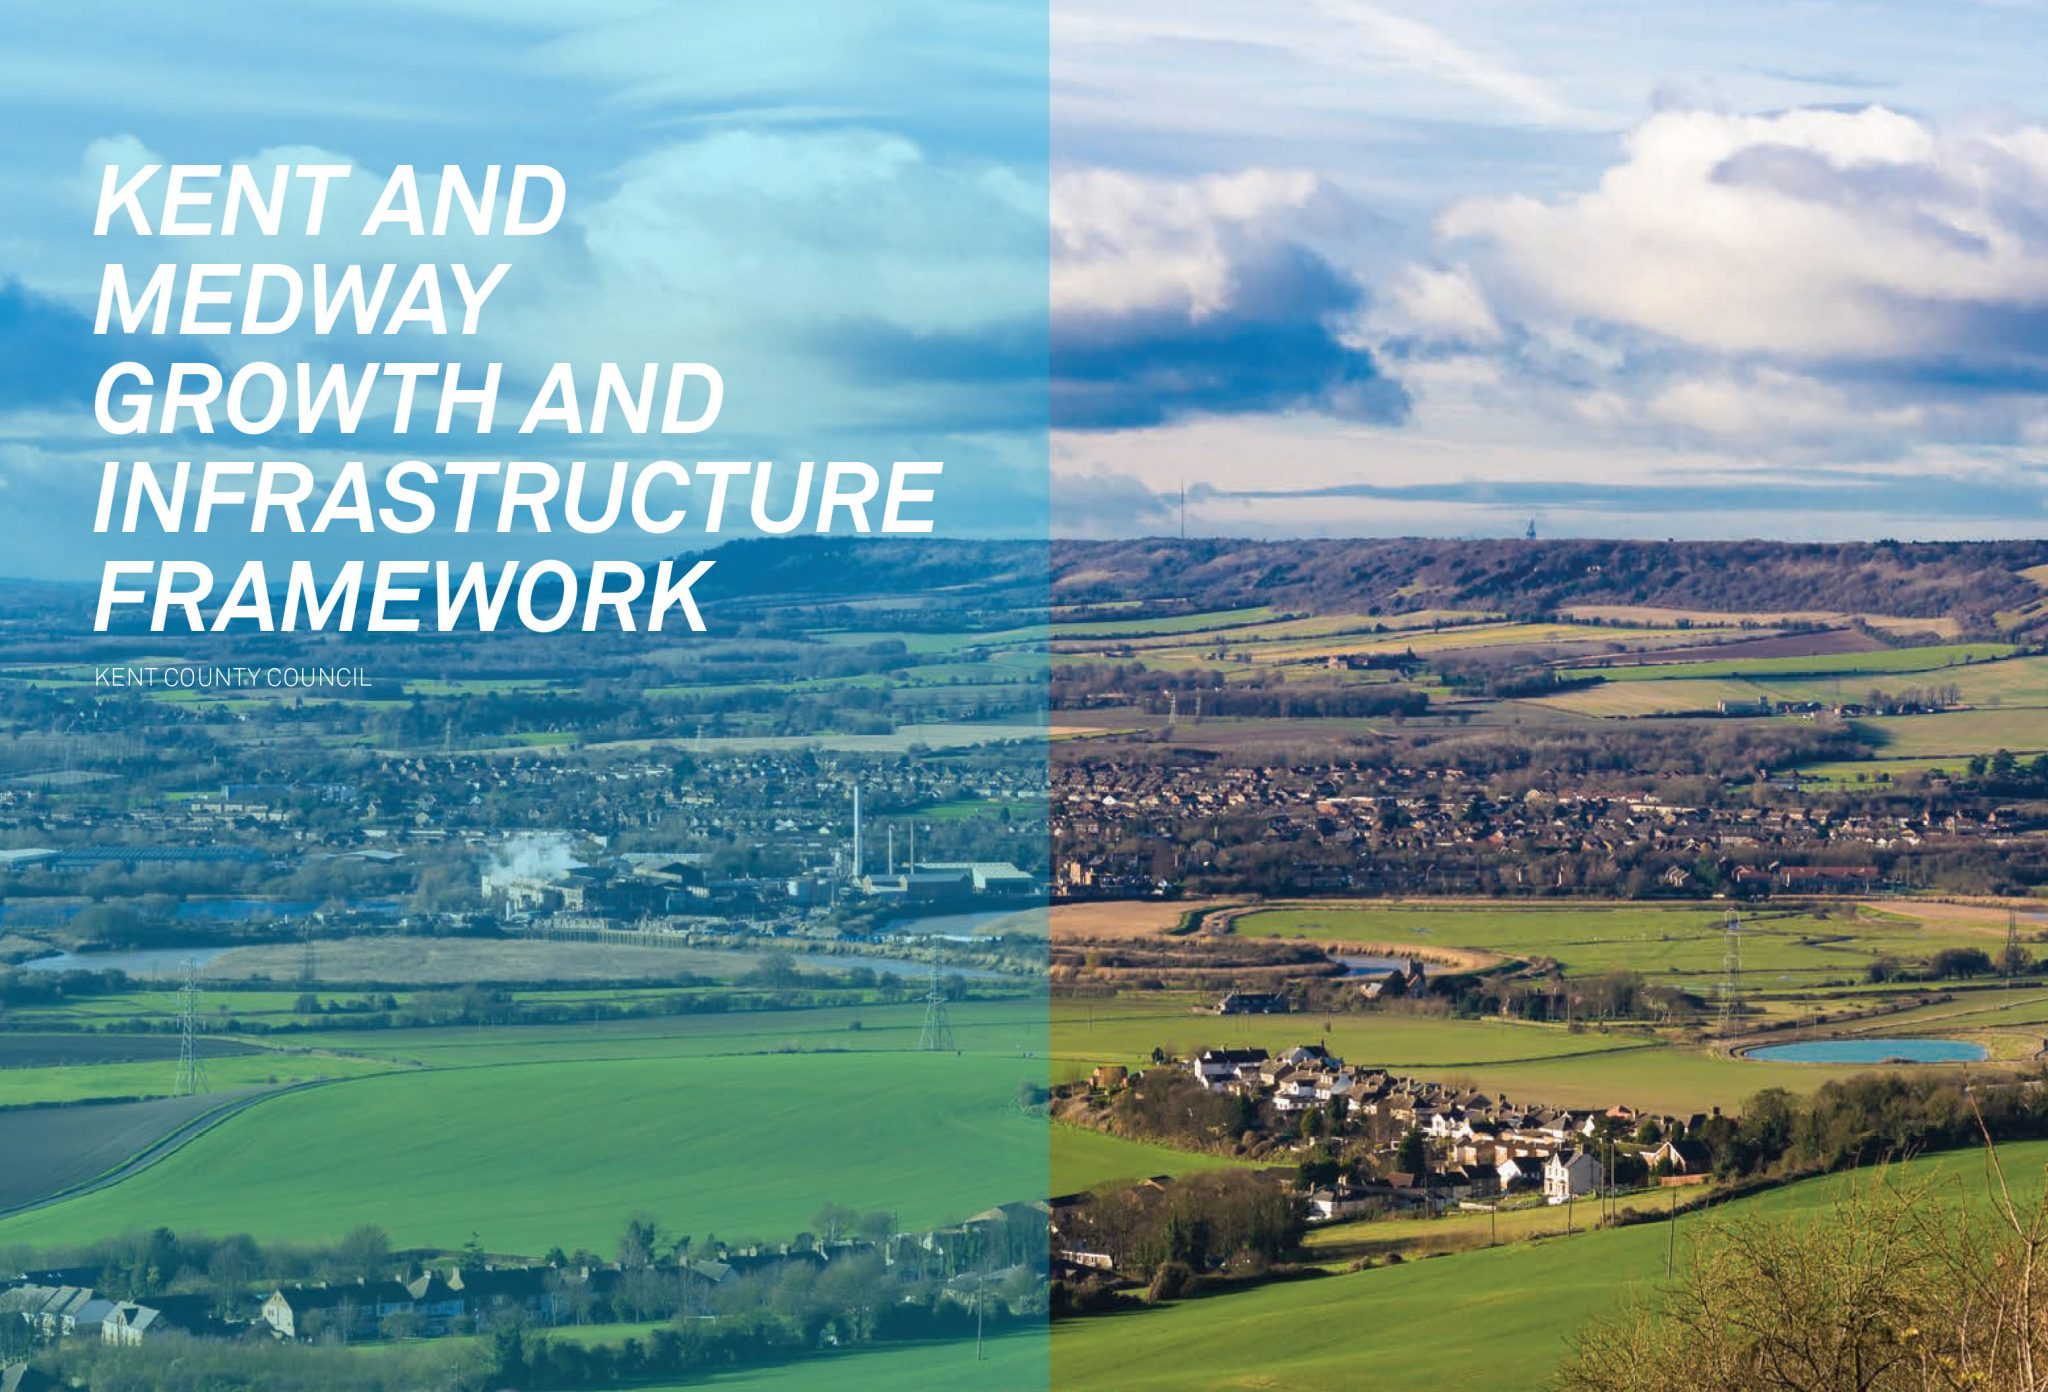 Kent and Medway Growth and Infrastructure Framework book cover